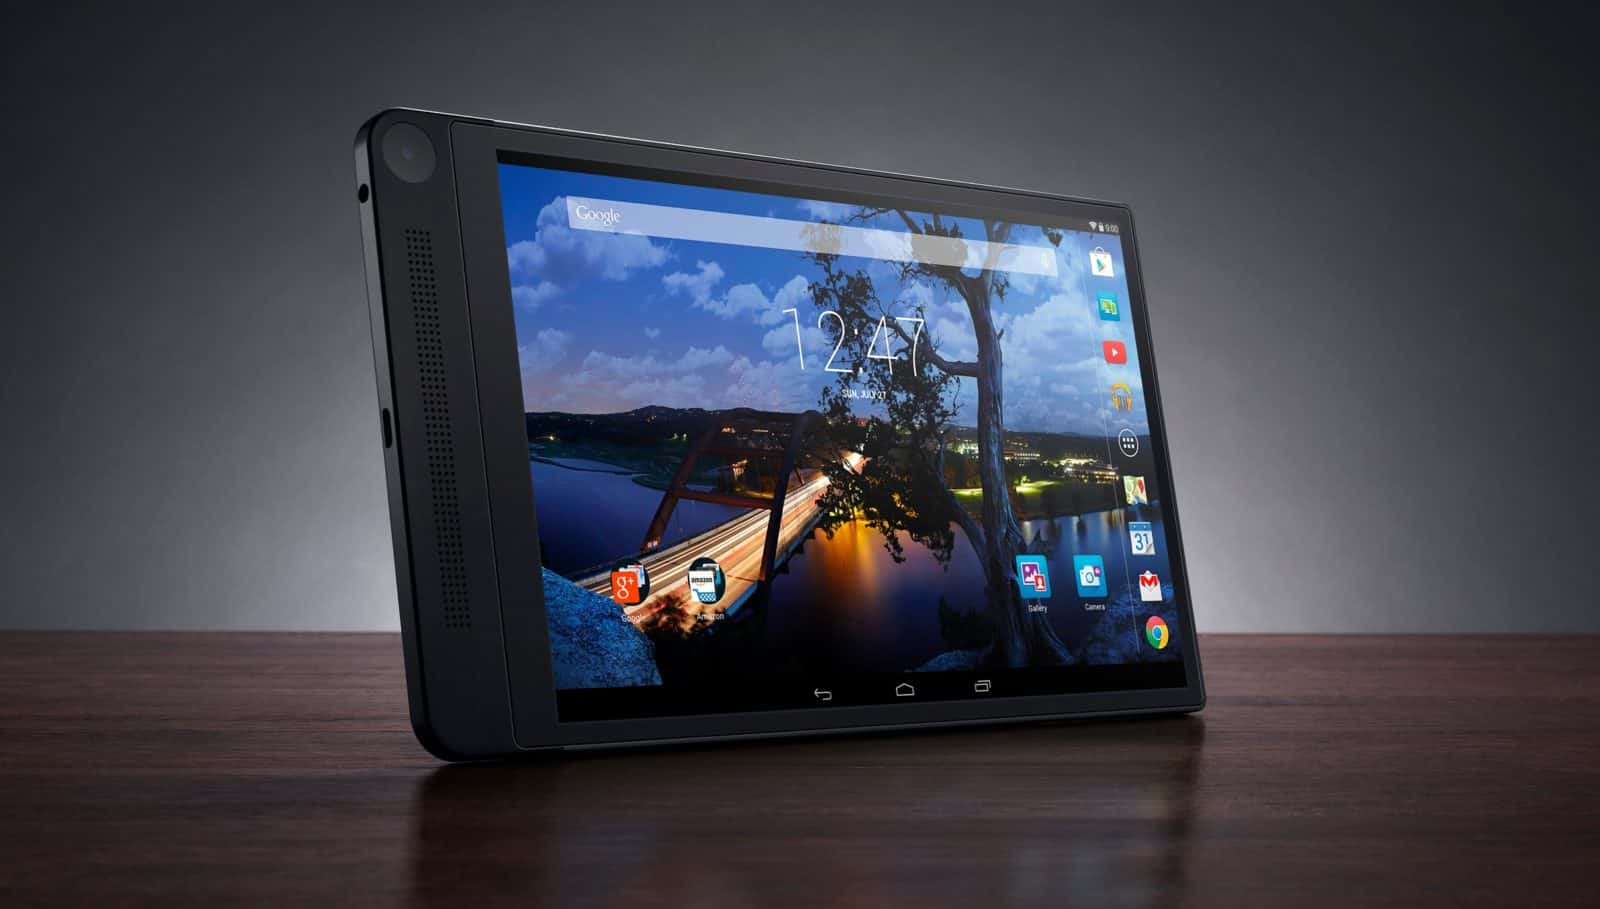 dell_venue_8_7000_tablet_